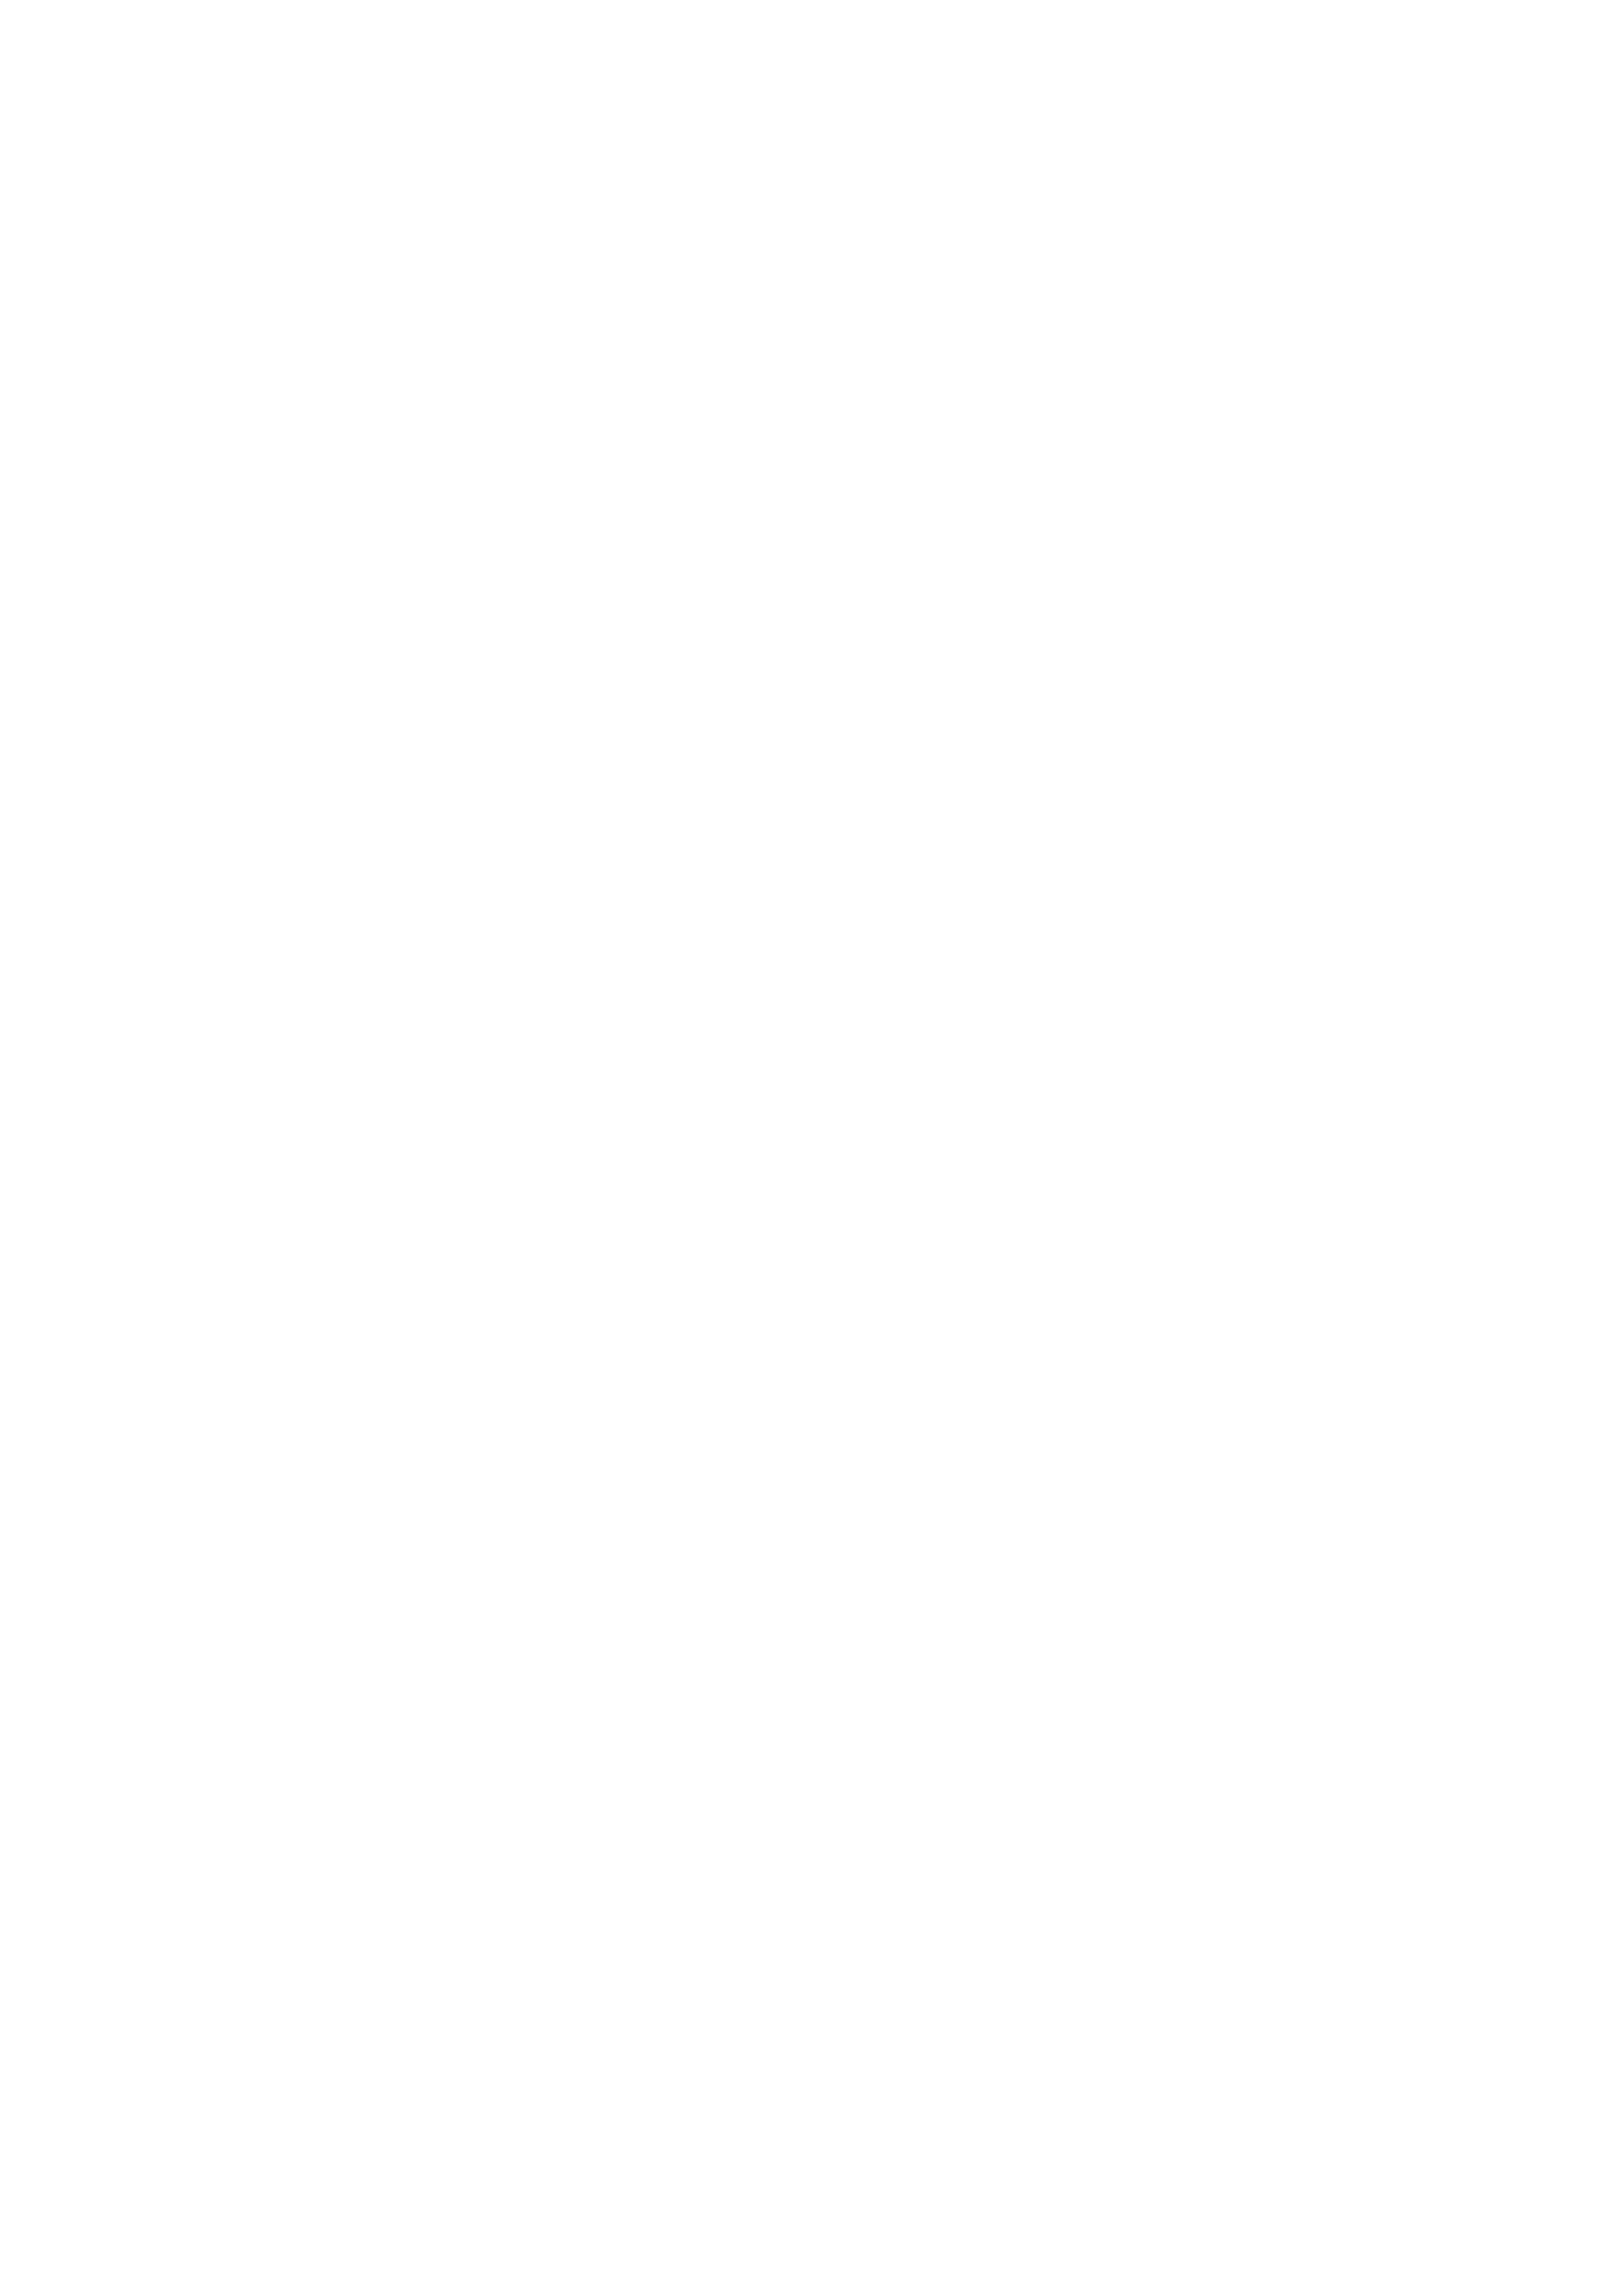 White-label cannabis product manufacturer needs a company T-shirt!